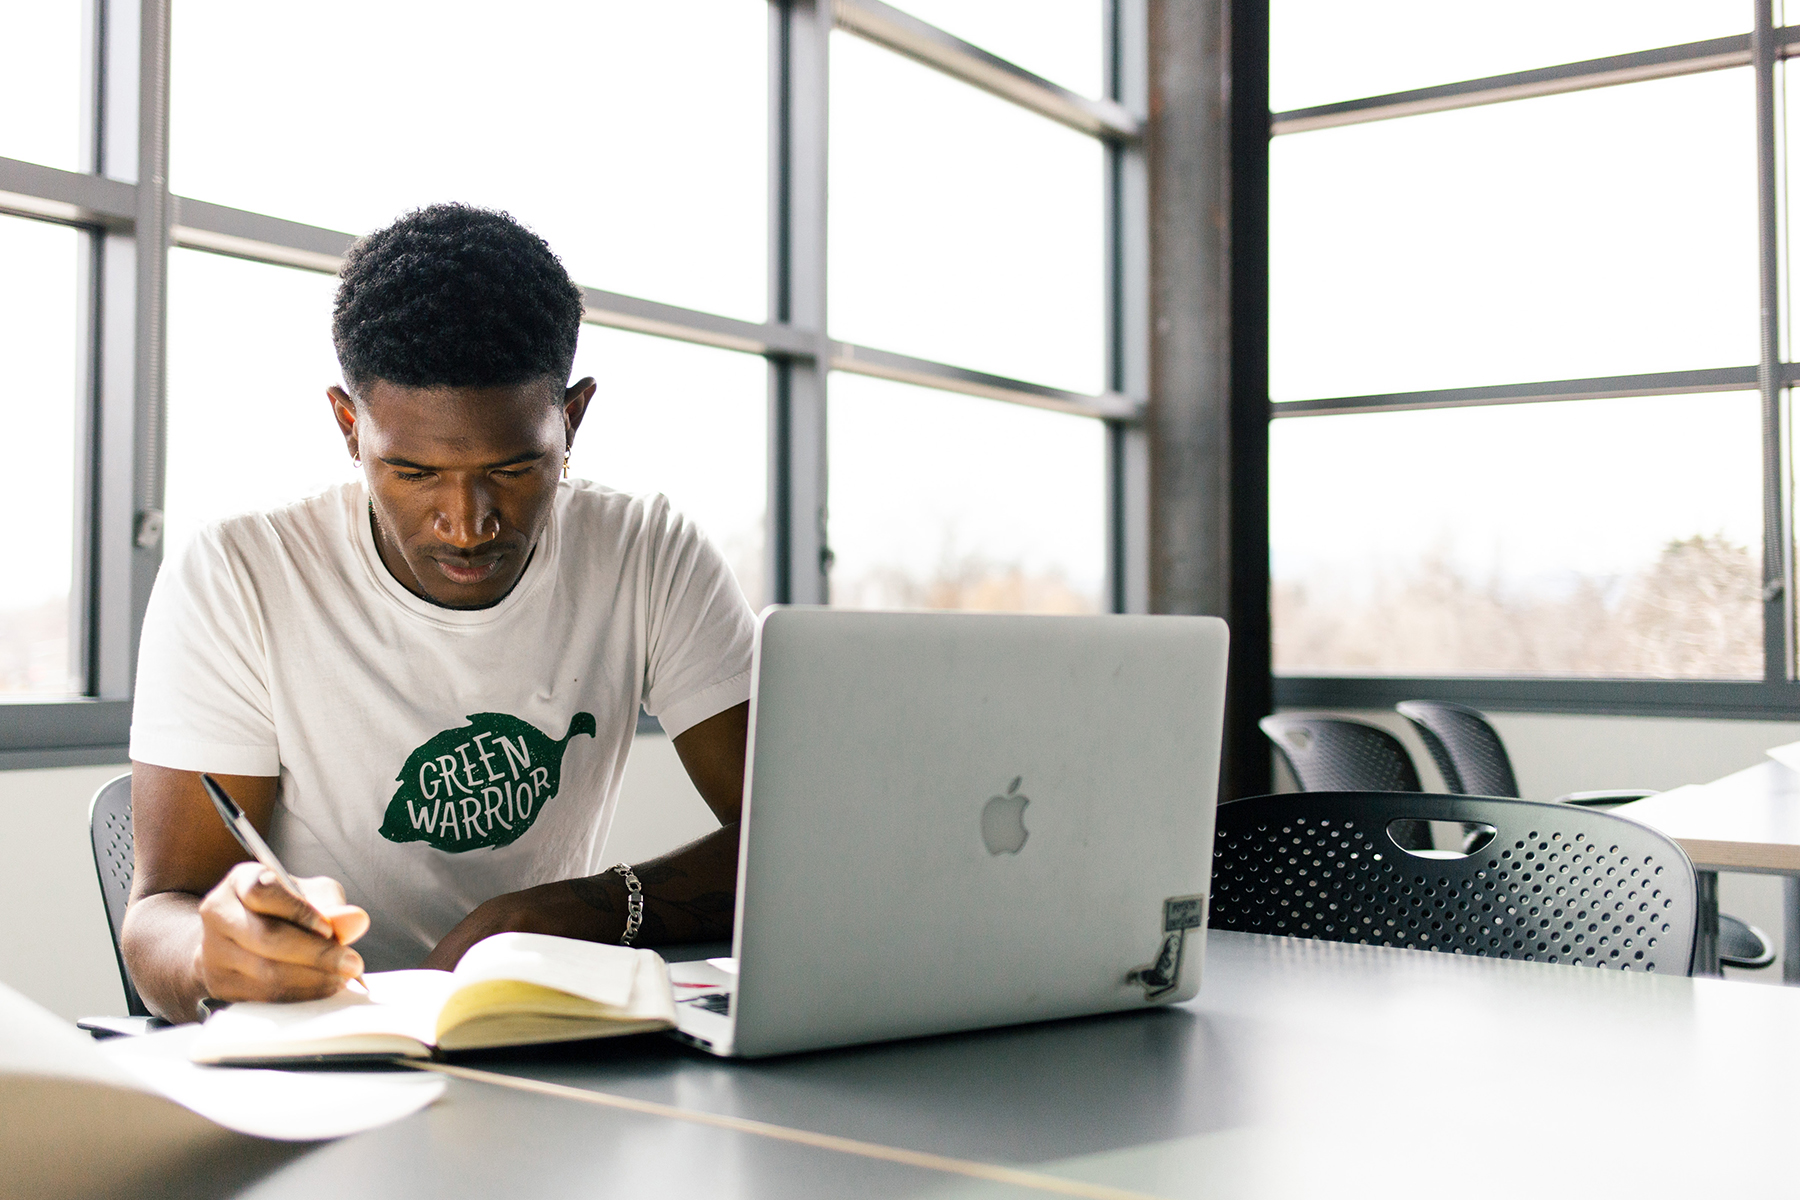 student studying with laptop and windows in background